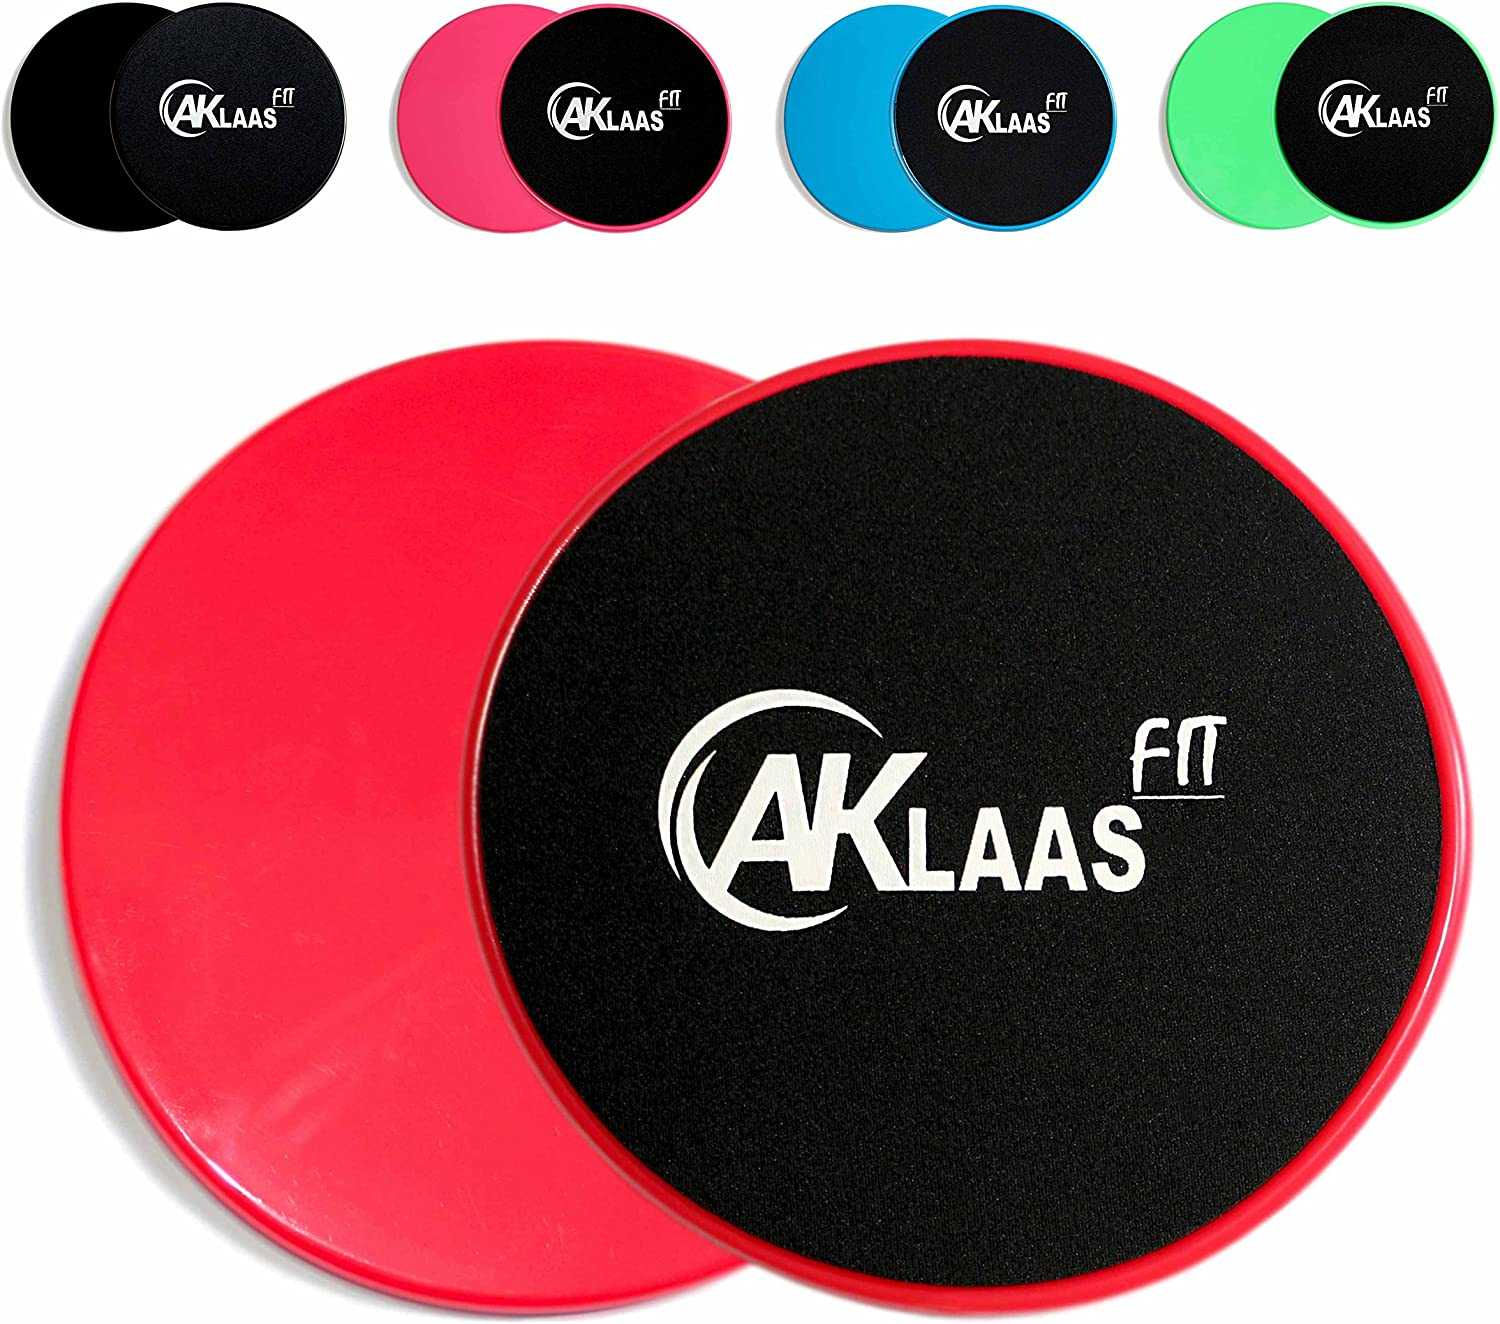 Core Sliders x2 Exercise Gliding Discs Dual Sided Use on Carpet, Hardwood Virtually Any Surface Workout Sliders Perfect Abdominal Exercise Equipment 80 Day Obsession – Abs and Booty